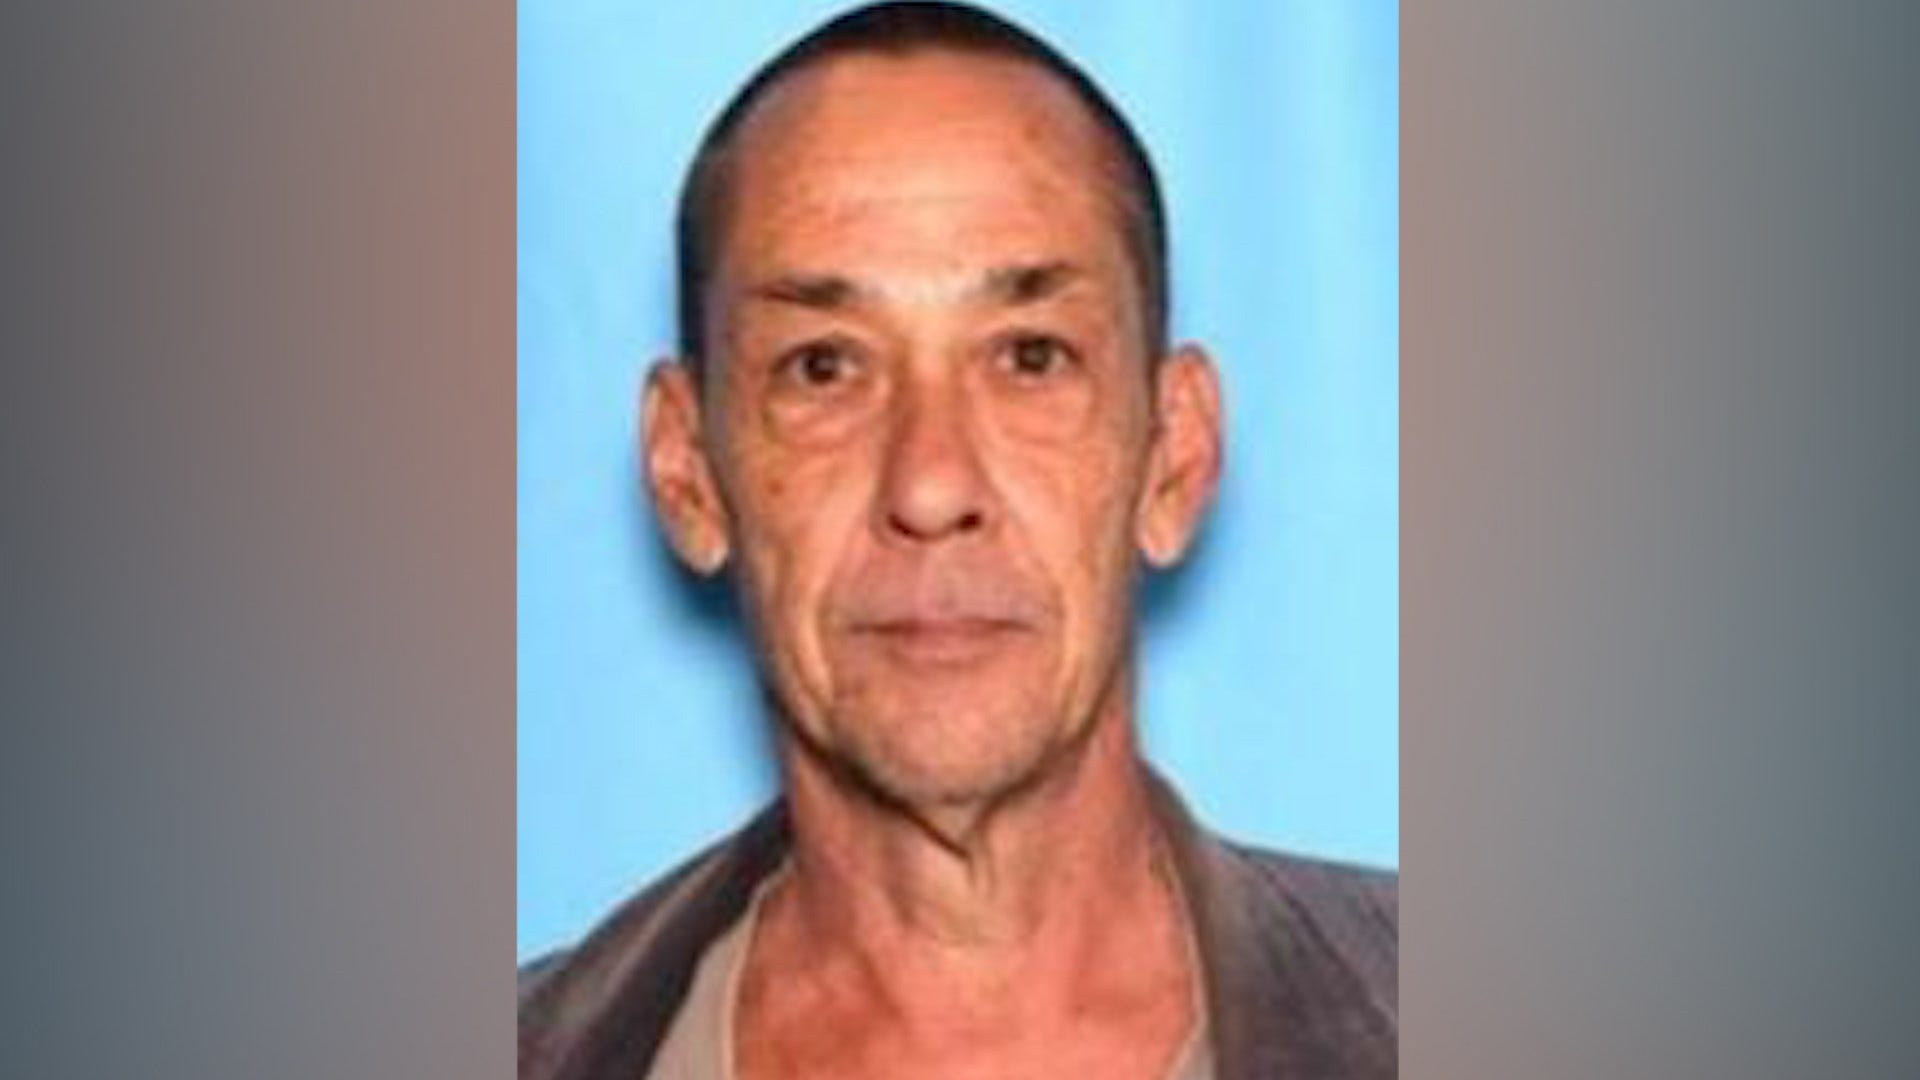 Family and police are searching for missing Kalihi man with medi 1920x1080